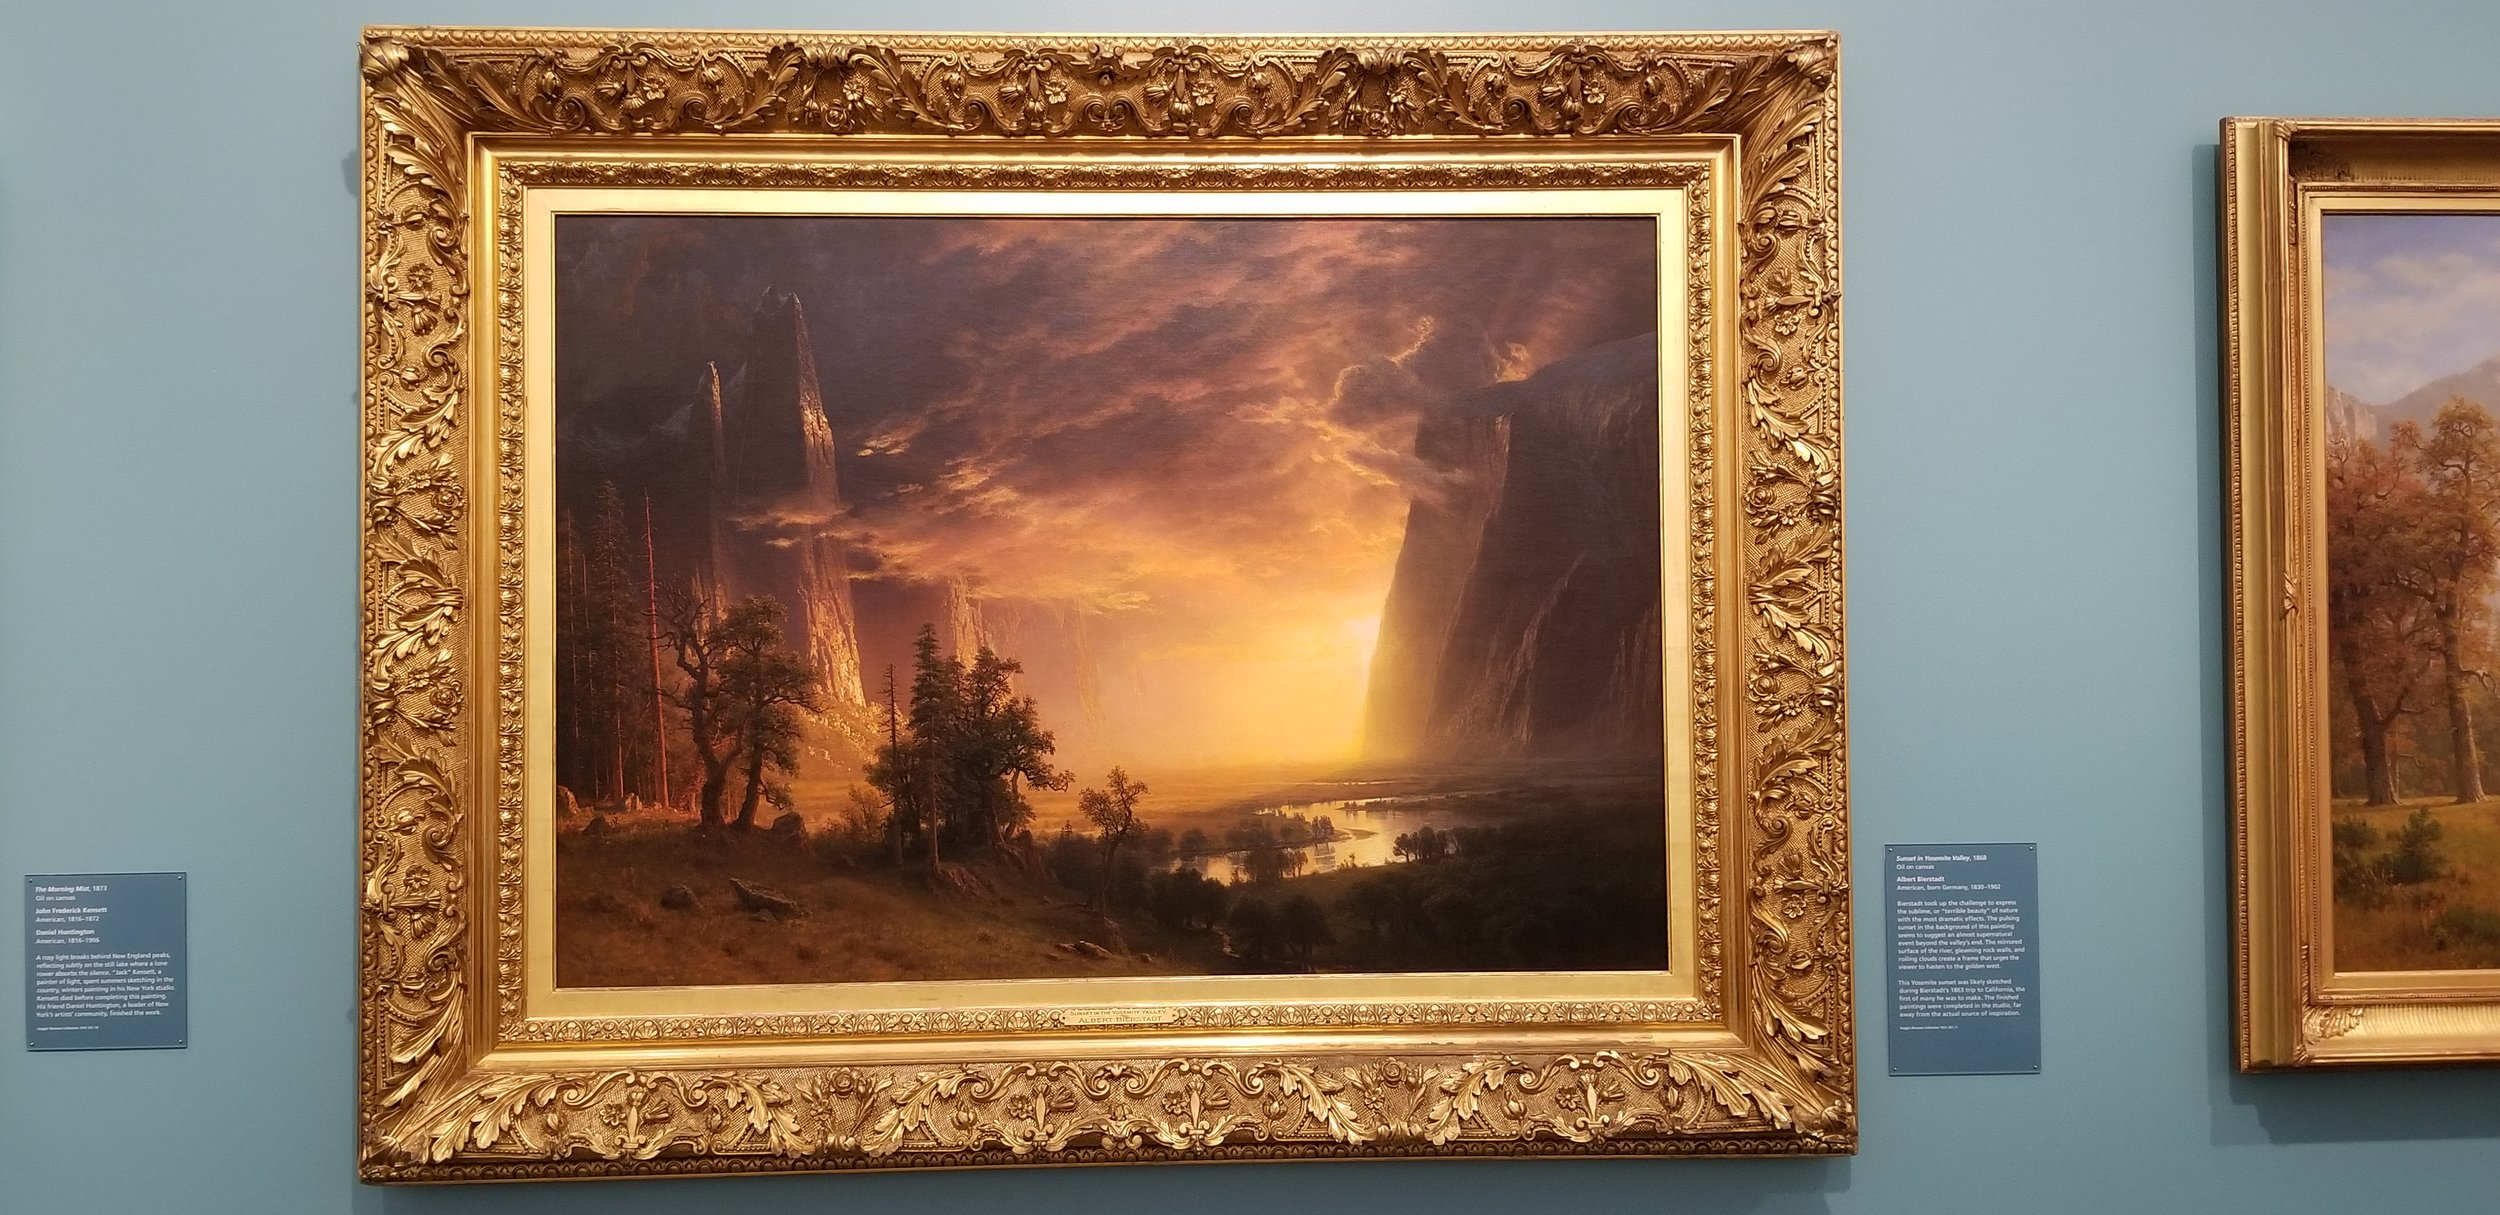 Sunset in the Yosemite Valley c. 1868 by Bierstadt, Albert 1830-1902   Size (inches): 36 1/4 x 52 1/4  Medium: Oil on Canvas Location: Hull Gallery